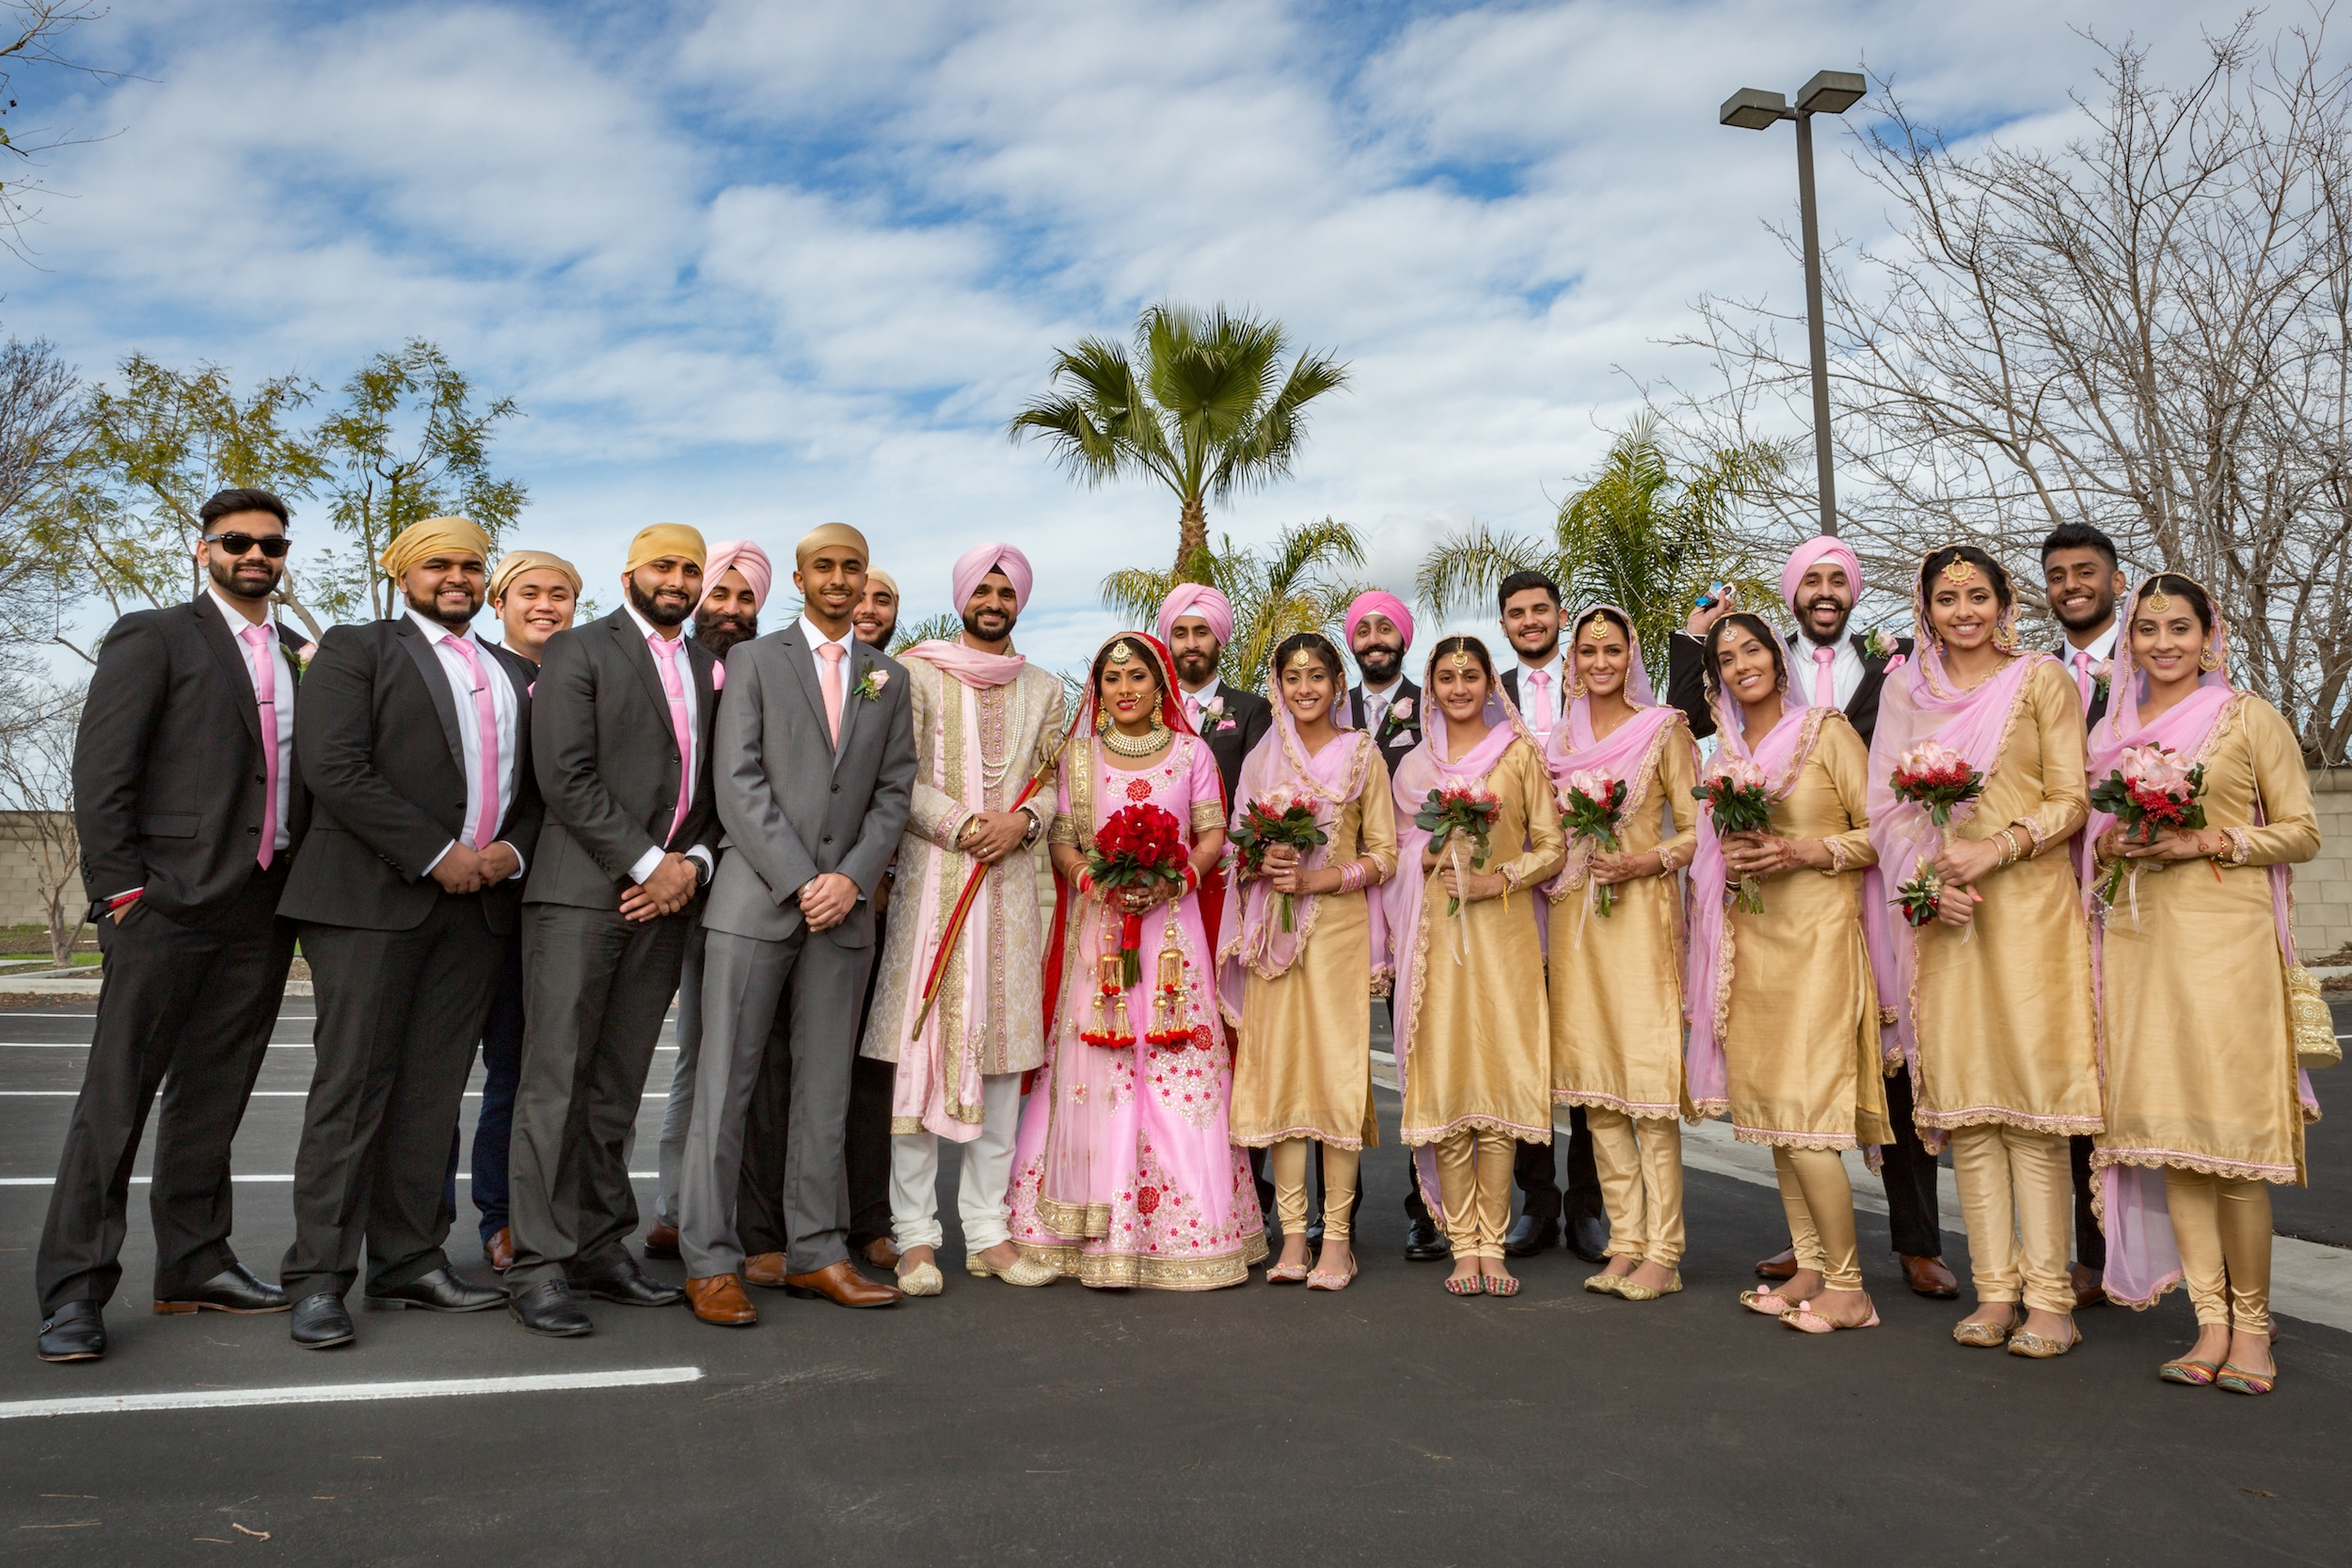 Groomsmen and the Bridesmaids